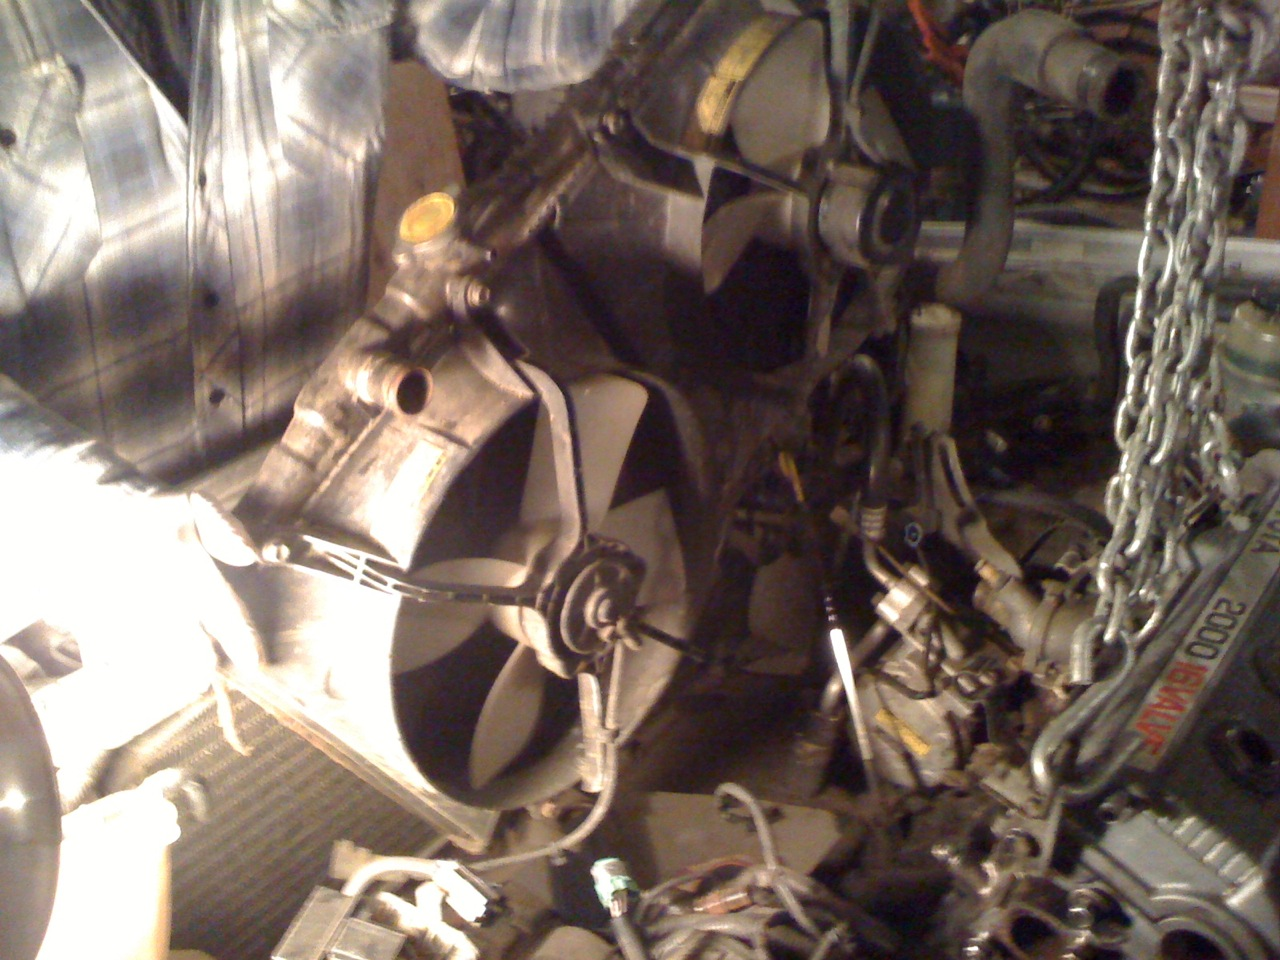 88 Camry 3sfe   The Saga Continues: Day 1 of engine swap